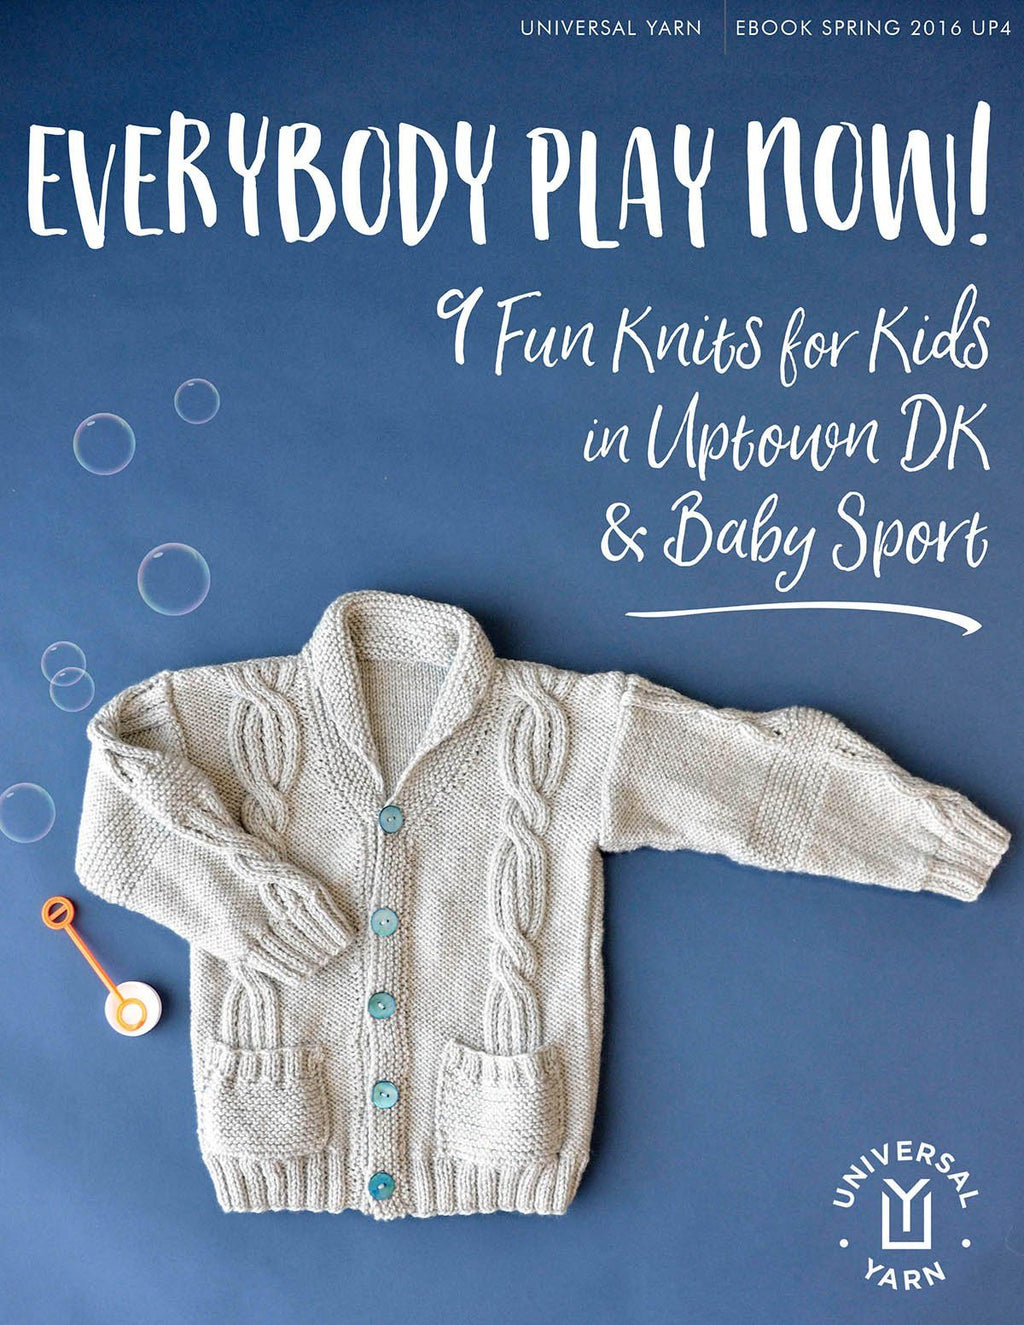 Everybody Play Now Pattern Universal Yarn